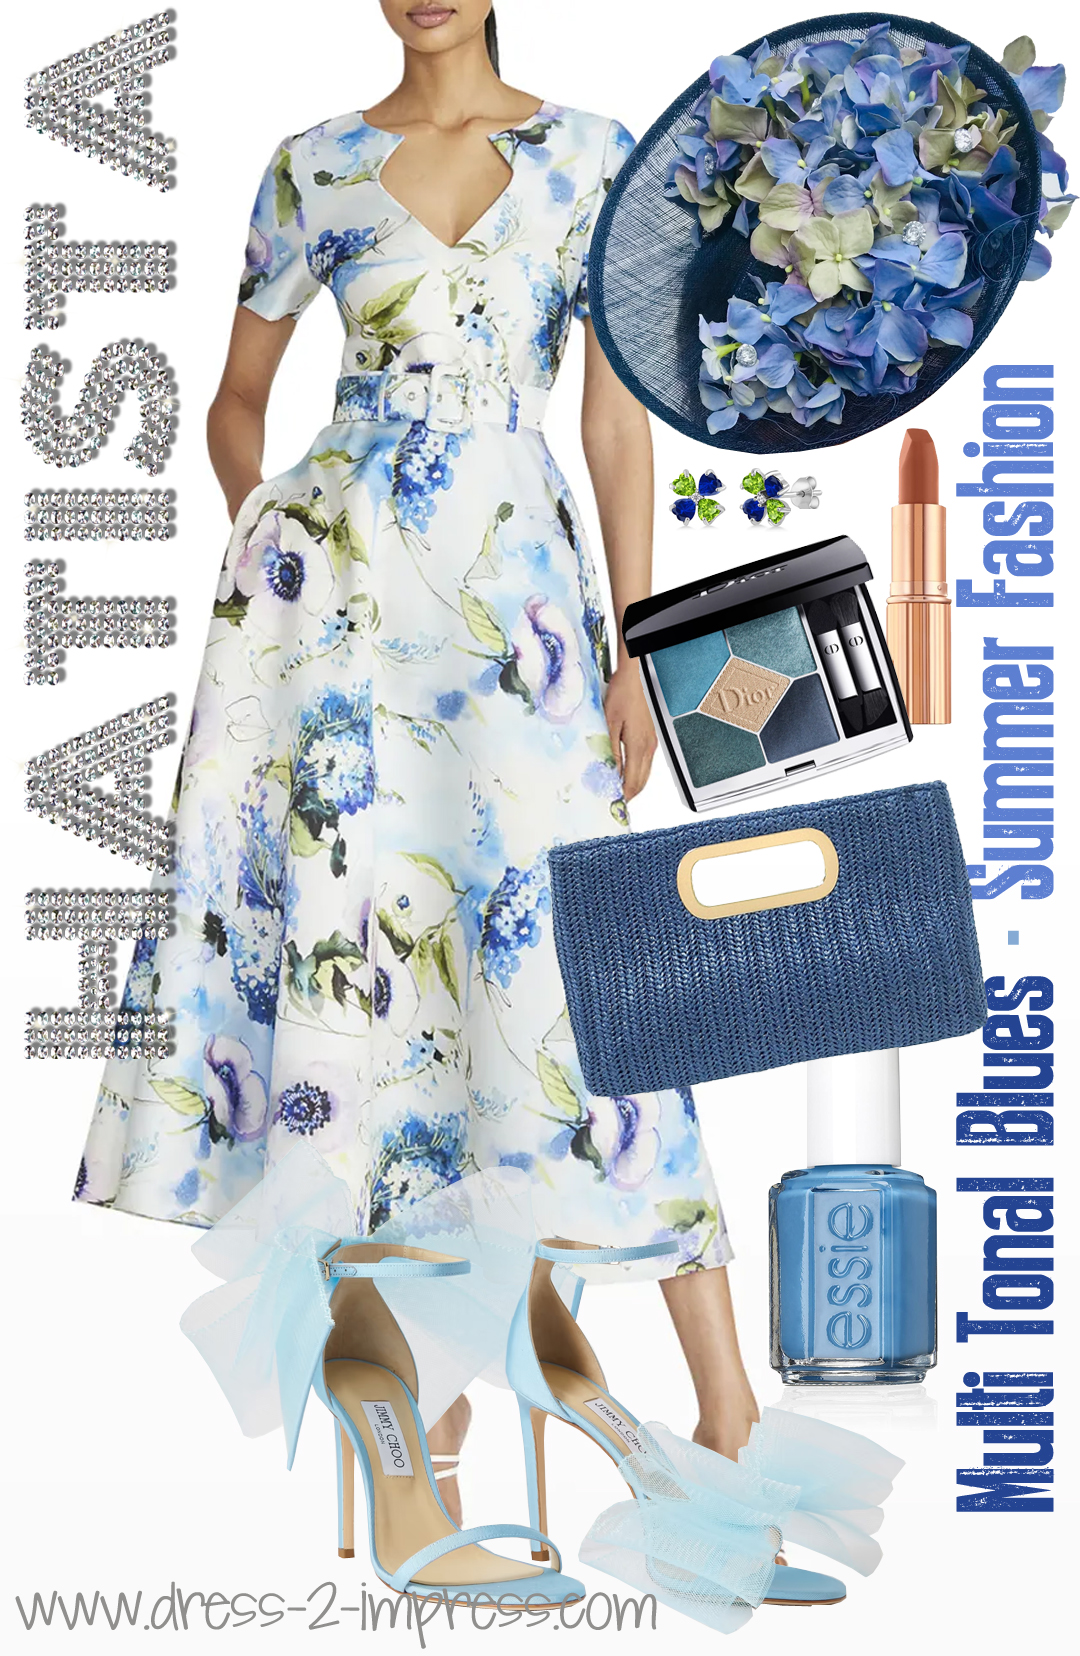 What to wear to the races. How to wear Baby Blue. Outfits with Pale Blue, Blue outfit ideas. Royal Ascot Fashion. Royal Ascot Attire. Outfit for Royal Ascot. How to wear Pastel Blue. Fashions on the Field outfits. #royalascot #outfitideas